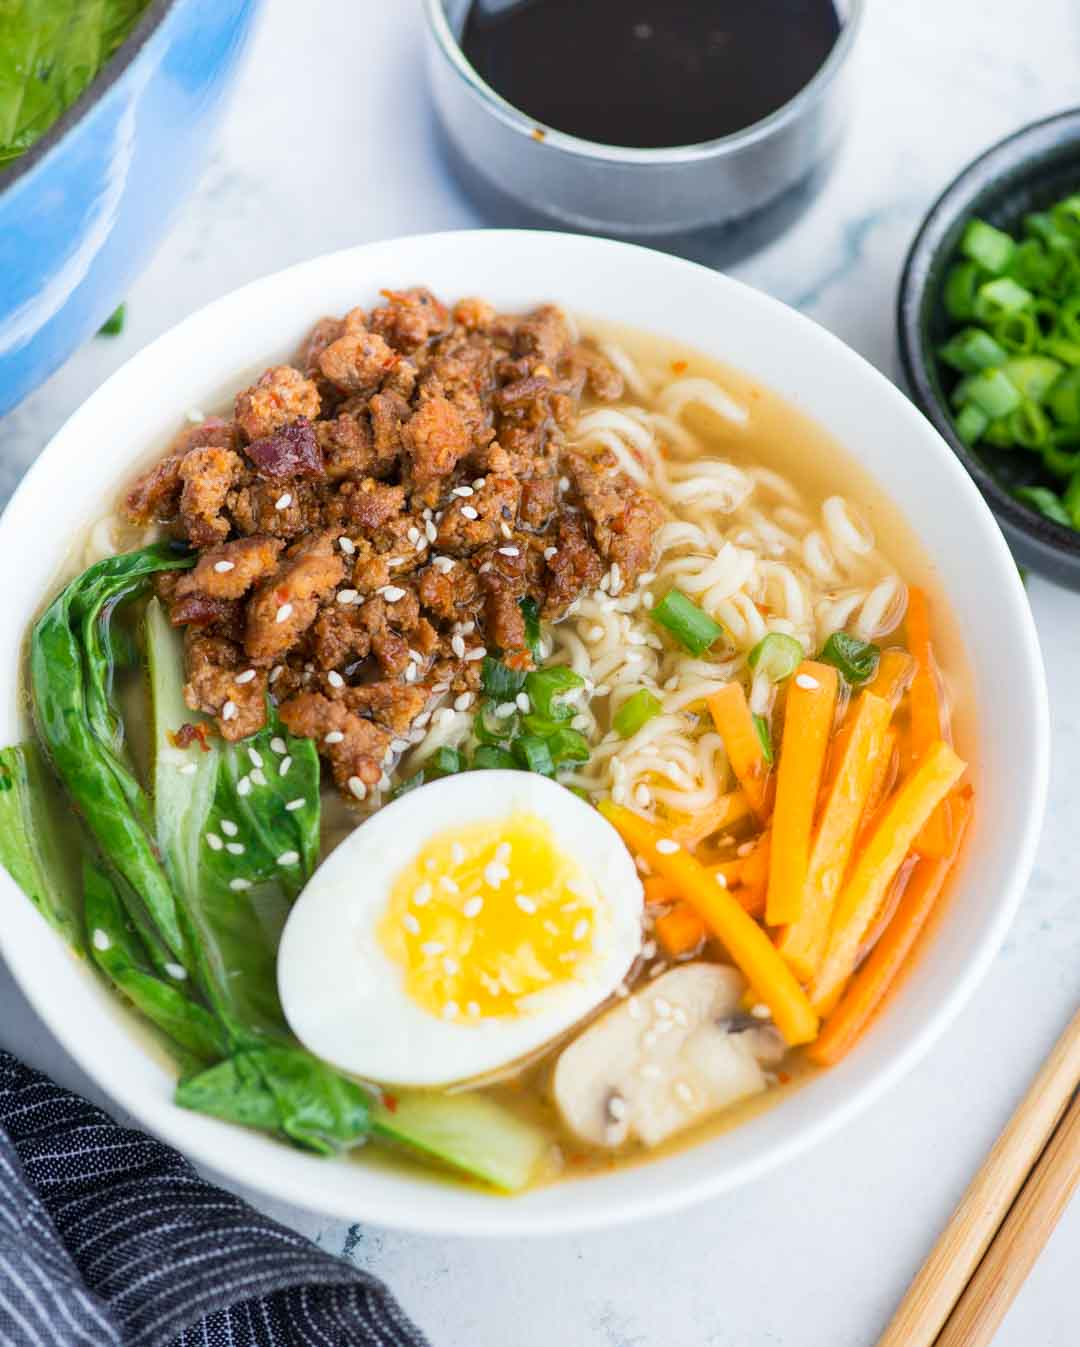 This Ramen recipe takes less than 20 minutes to make. Pork ramen with a really flavourful broth with a secret ingredient for extra depth of flavor, ramen noodles, spicy pork is comfort in a bowl, especially for cold winter days.